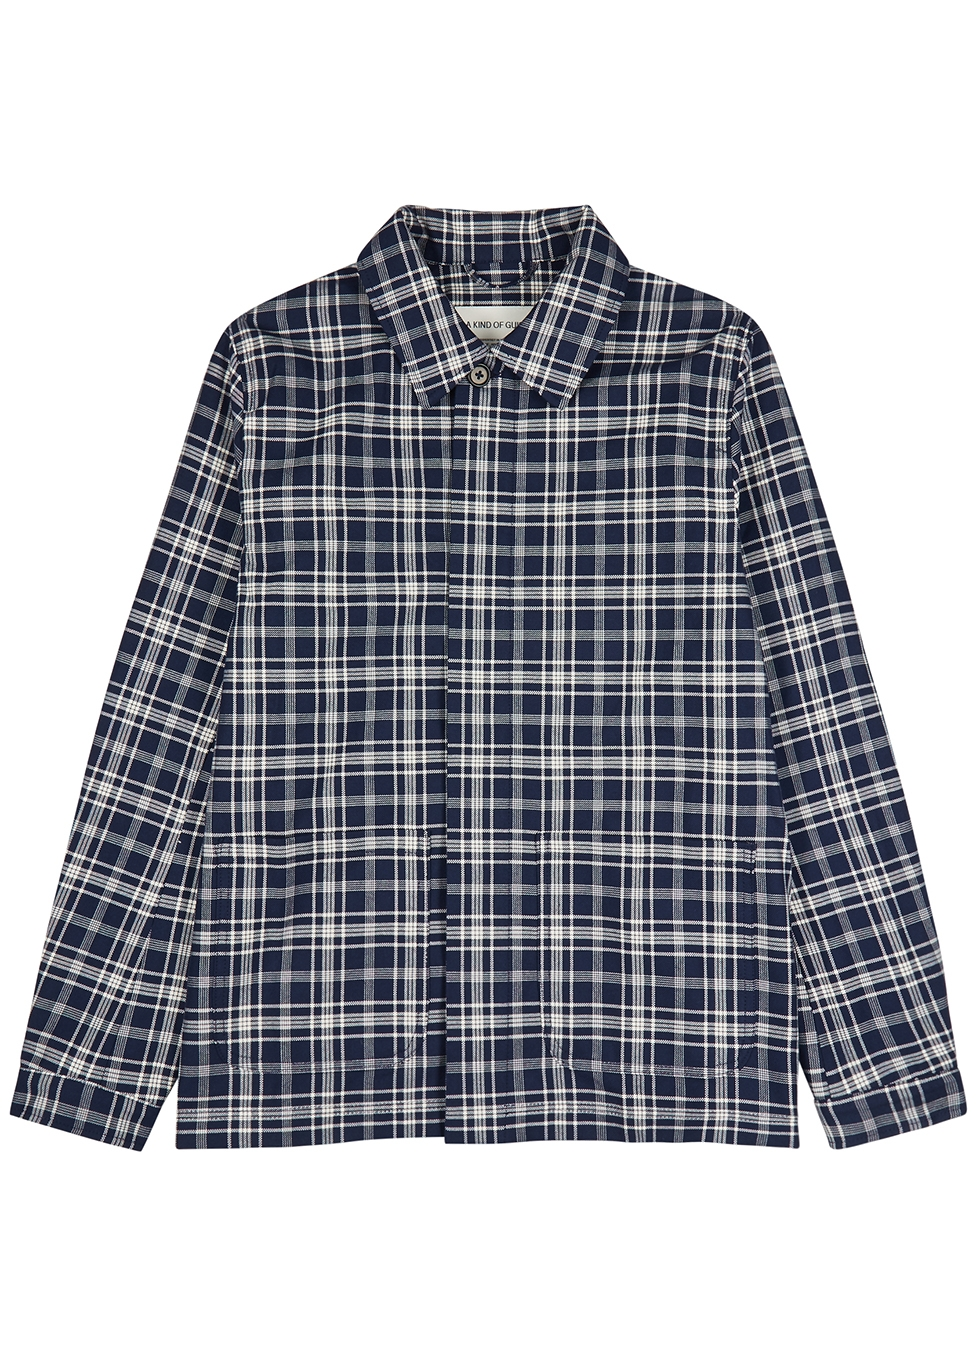 Jakarta navy checked cotton jacket - A Kind of Guise